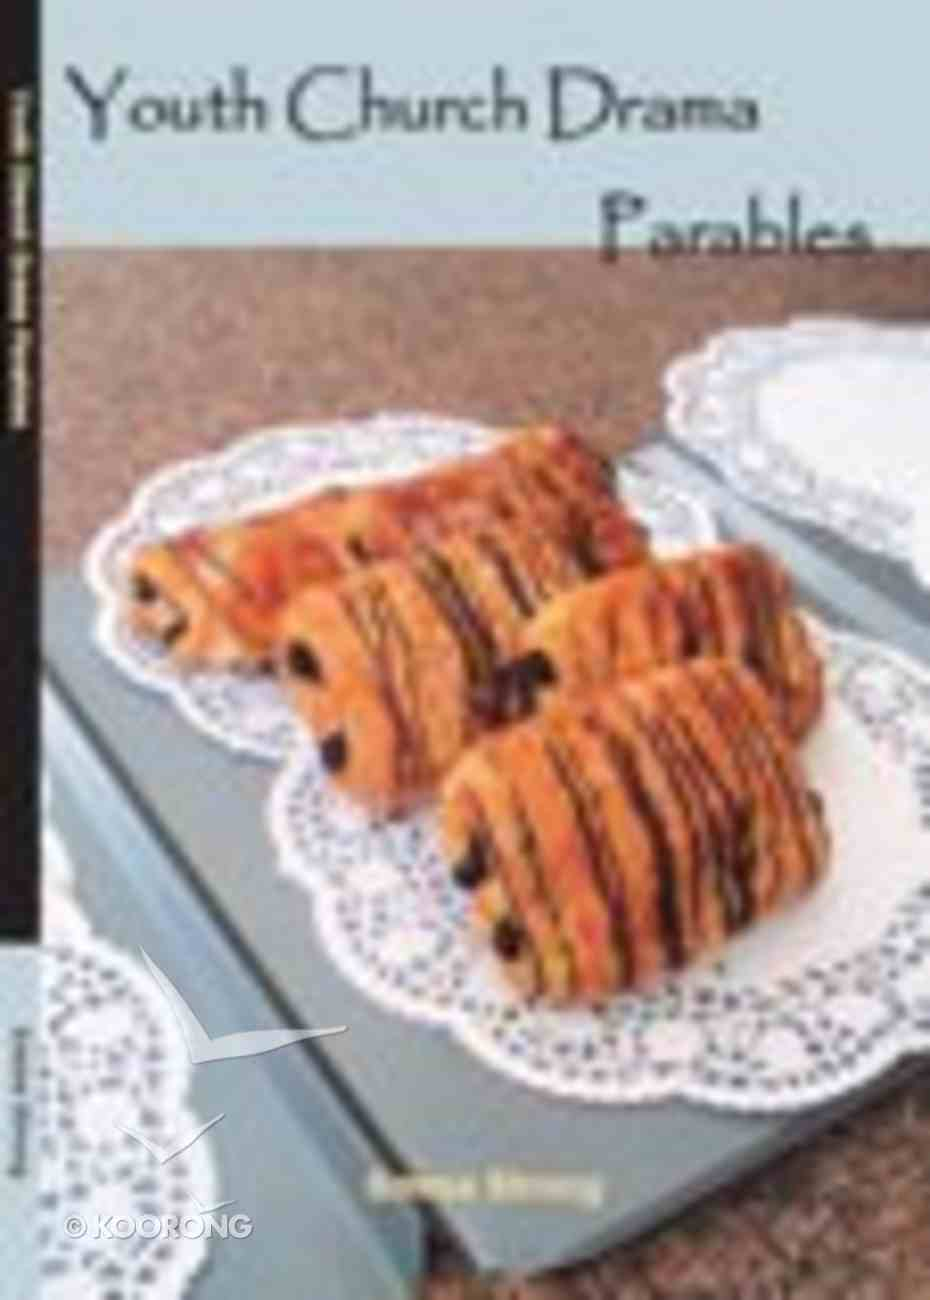 Youth Church Drama Parables Paperback